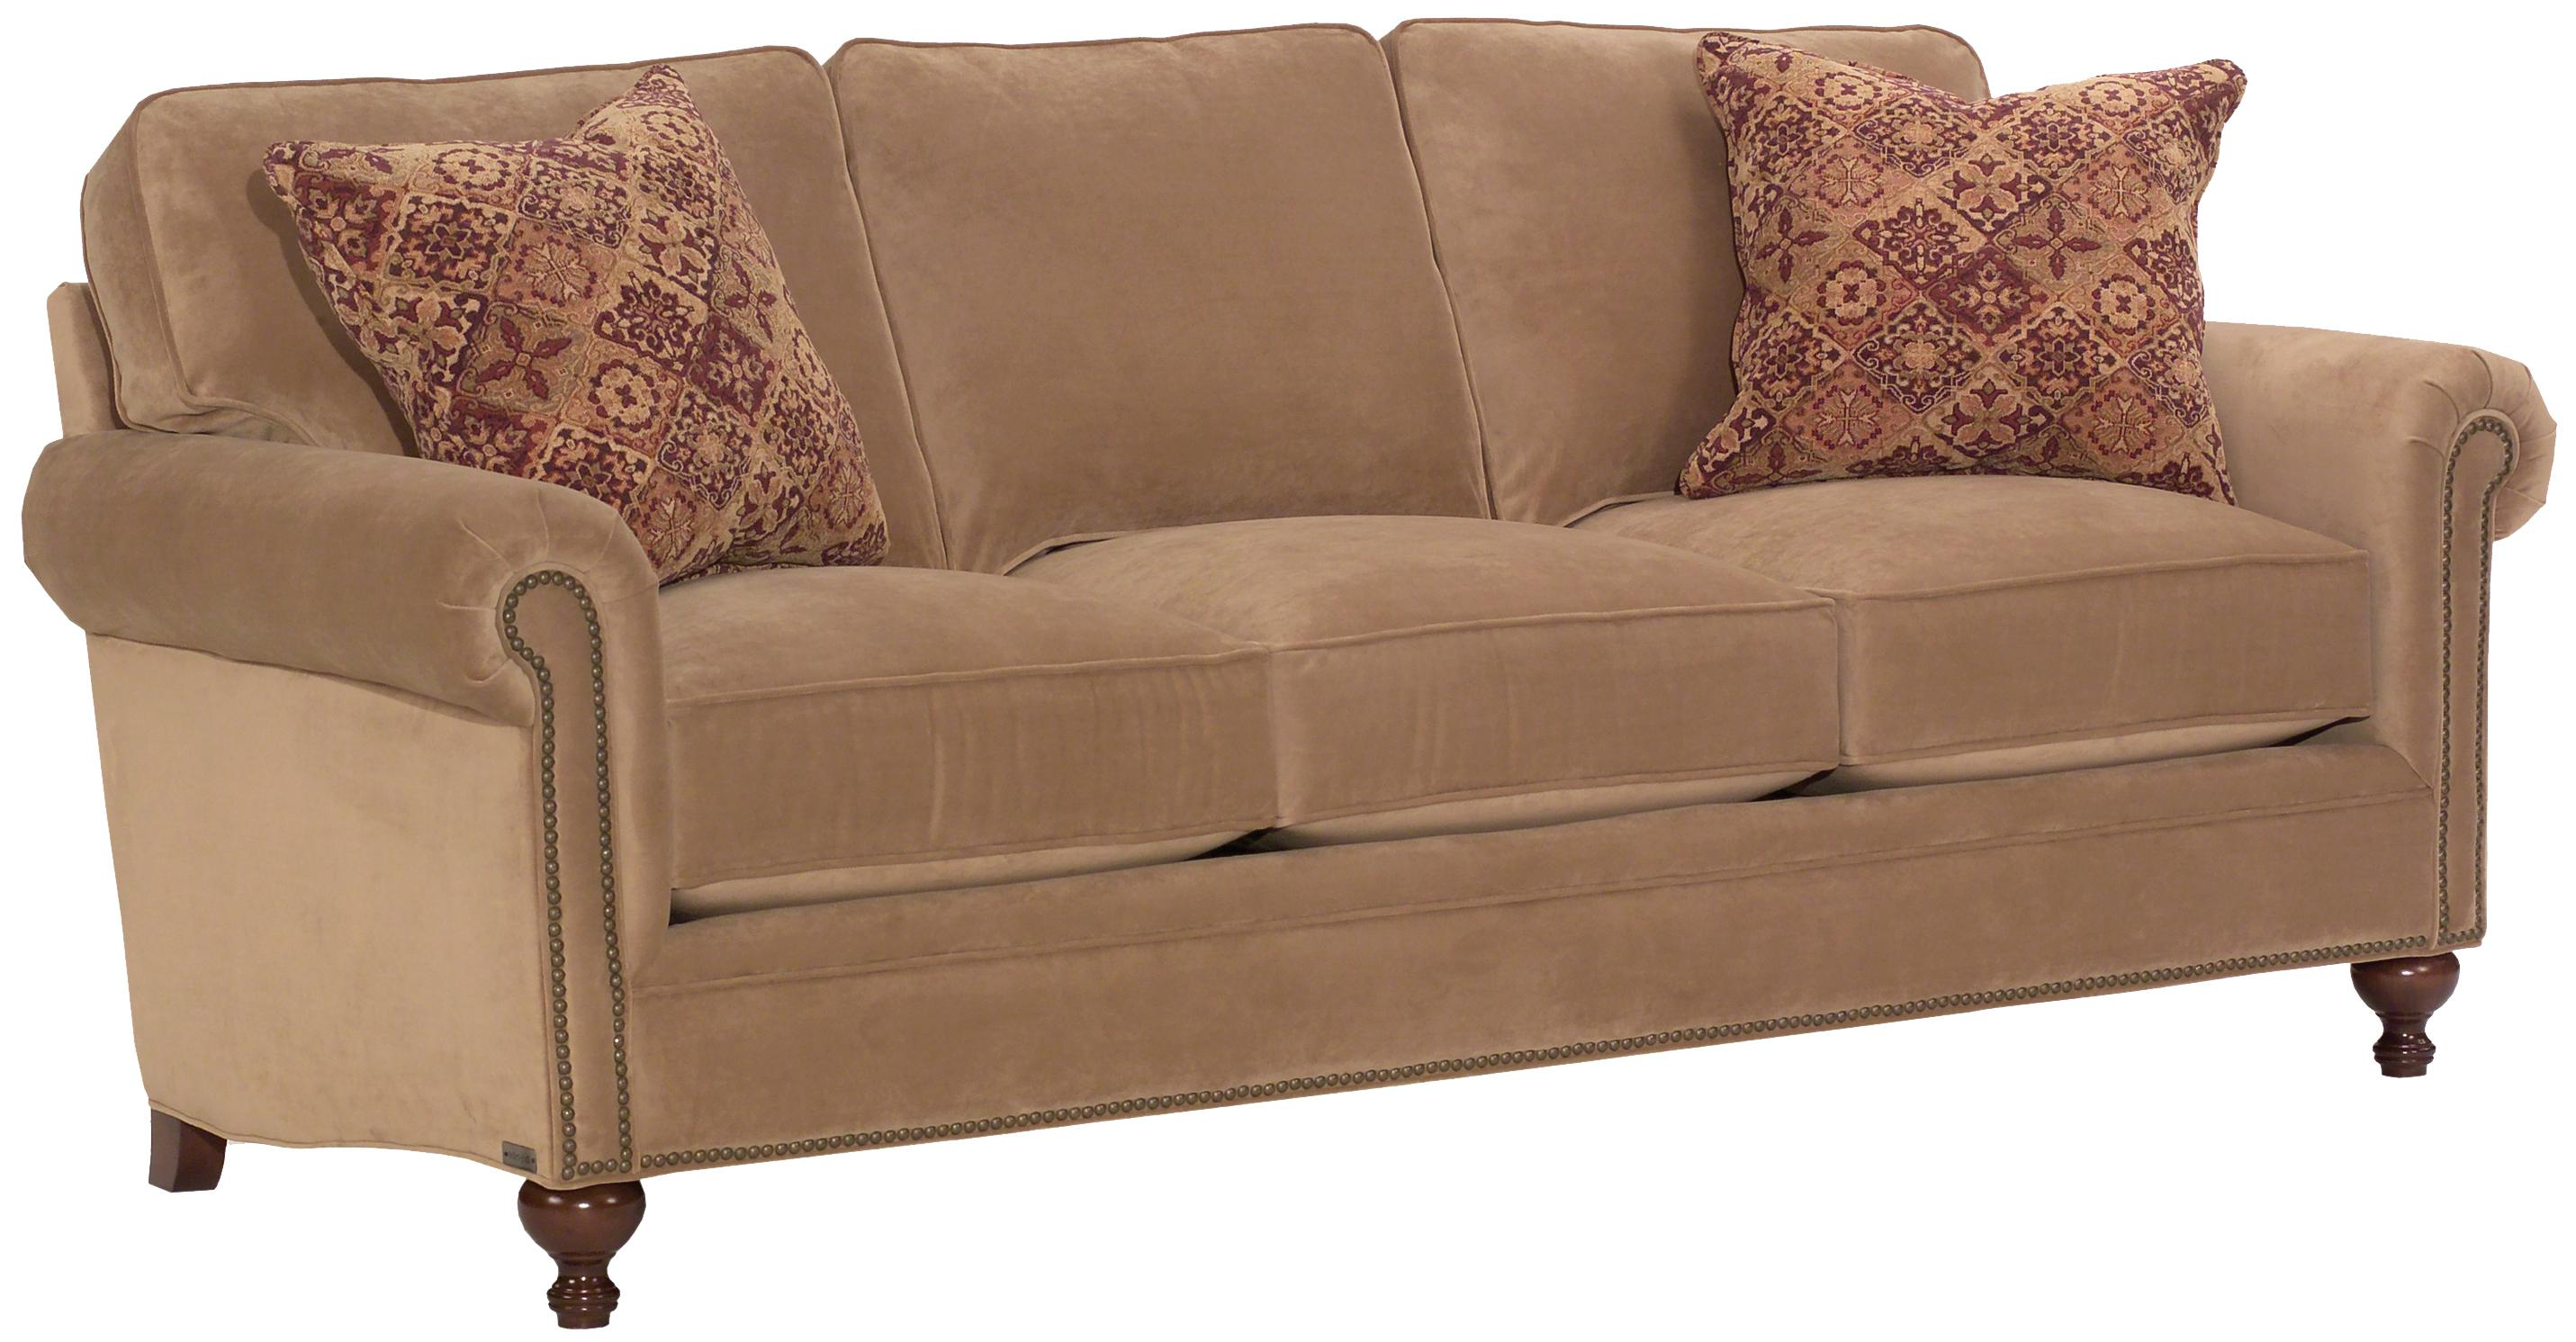 Broyhill Furniture Harrison Traditional Style Sofa With